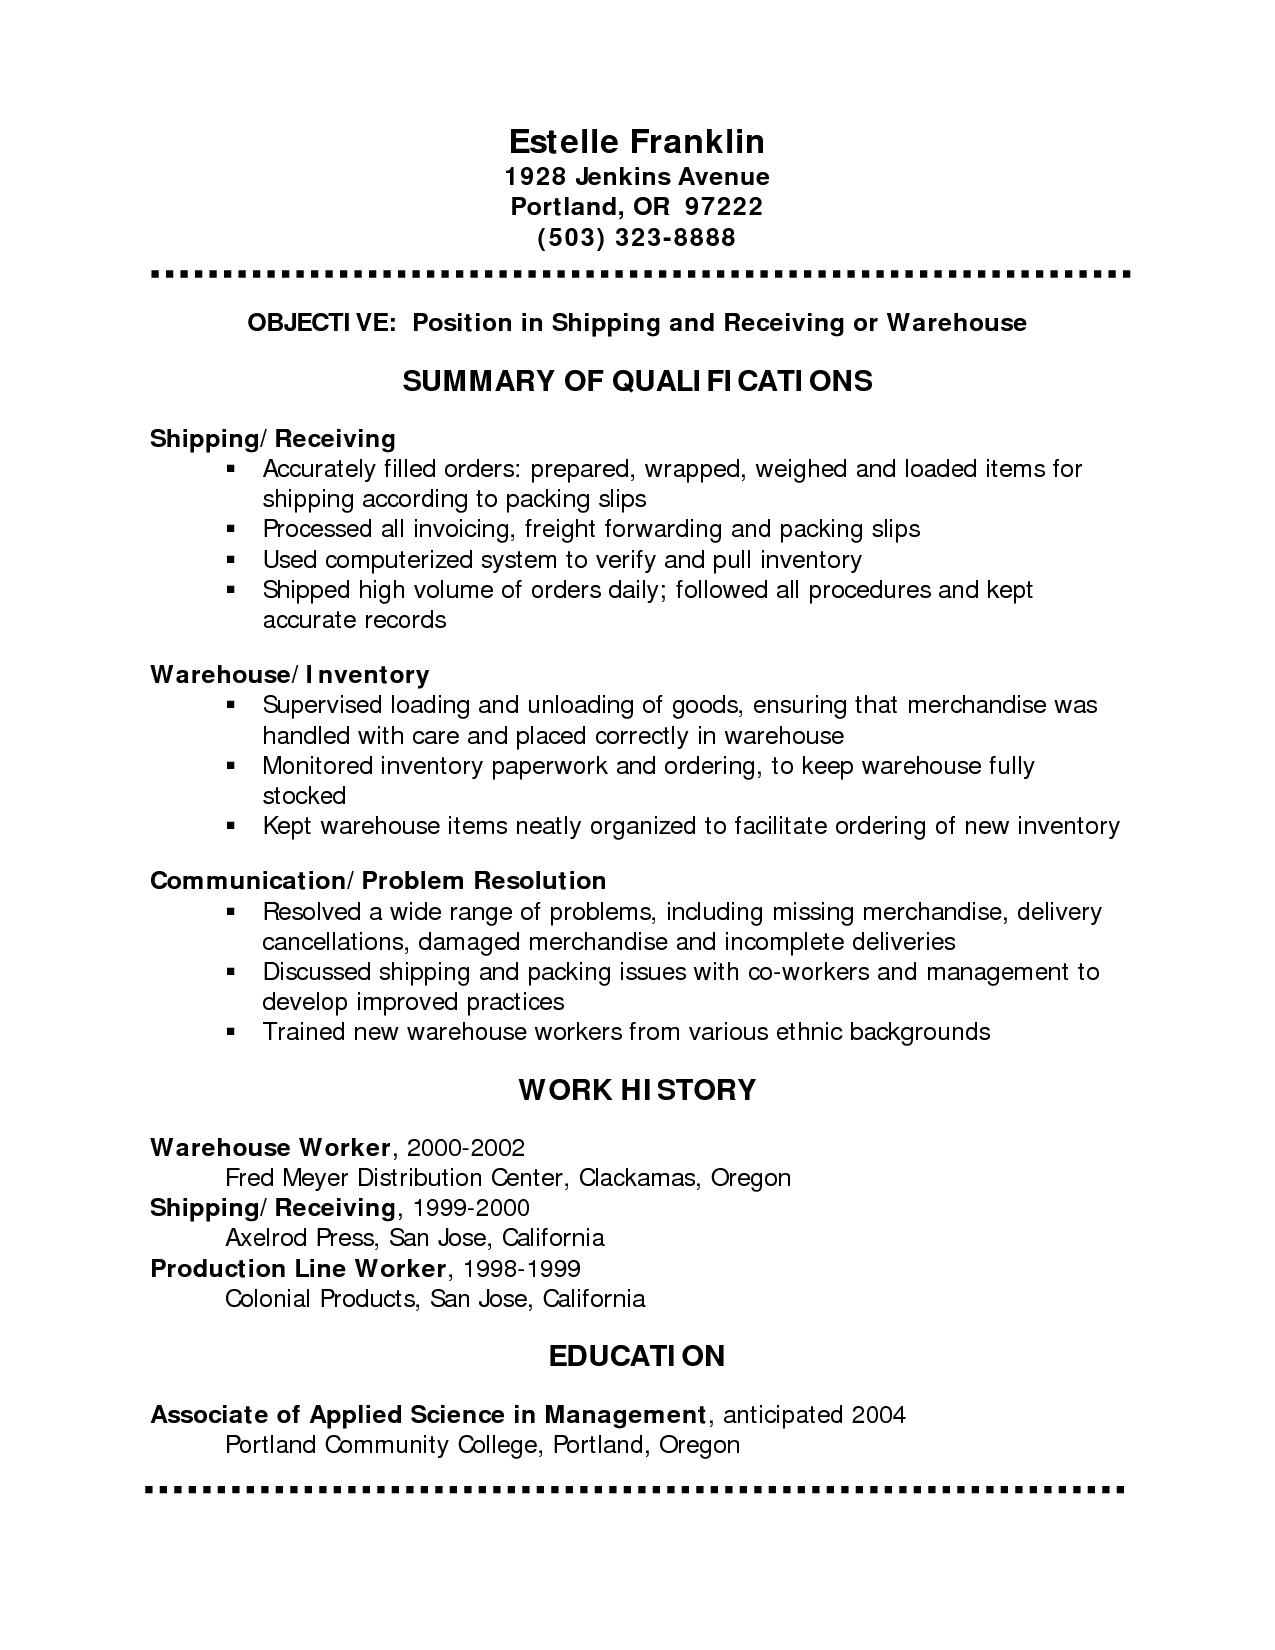 Resume Examples Free Professional Templates Best Template Downloadable  Resume Examples Free Download